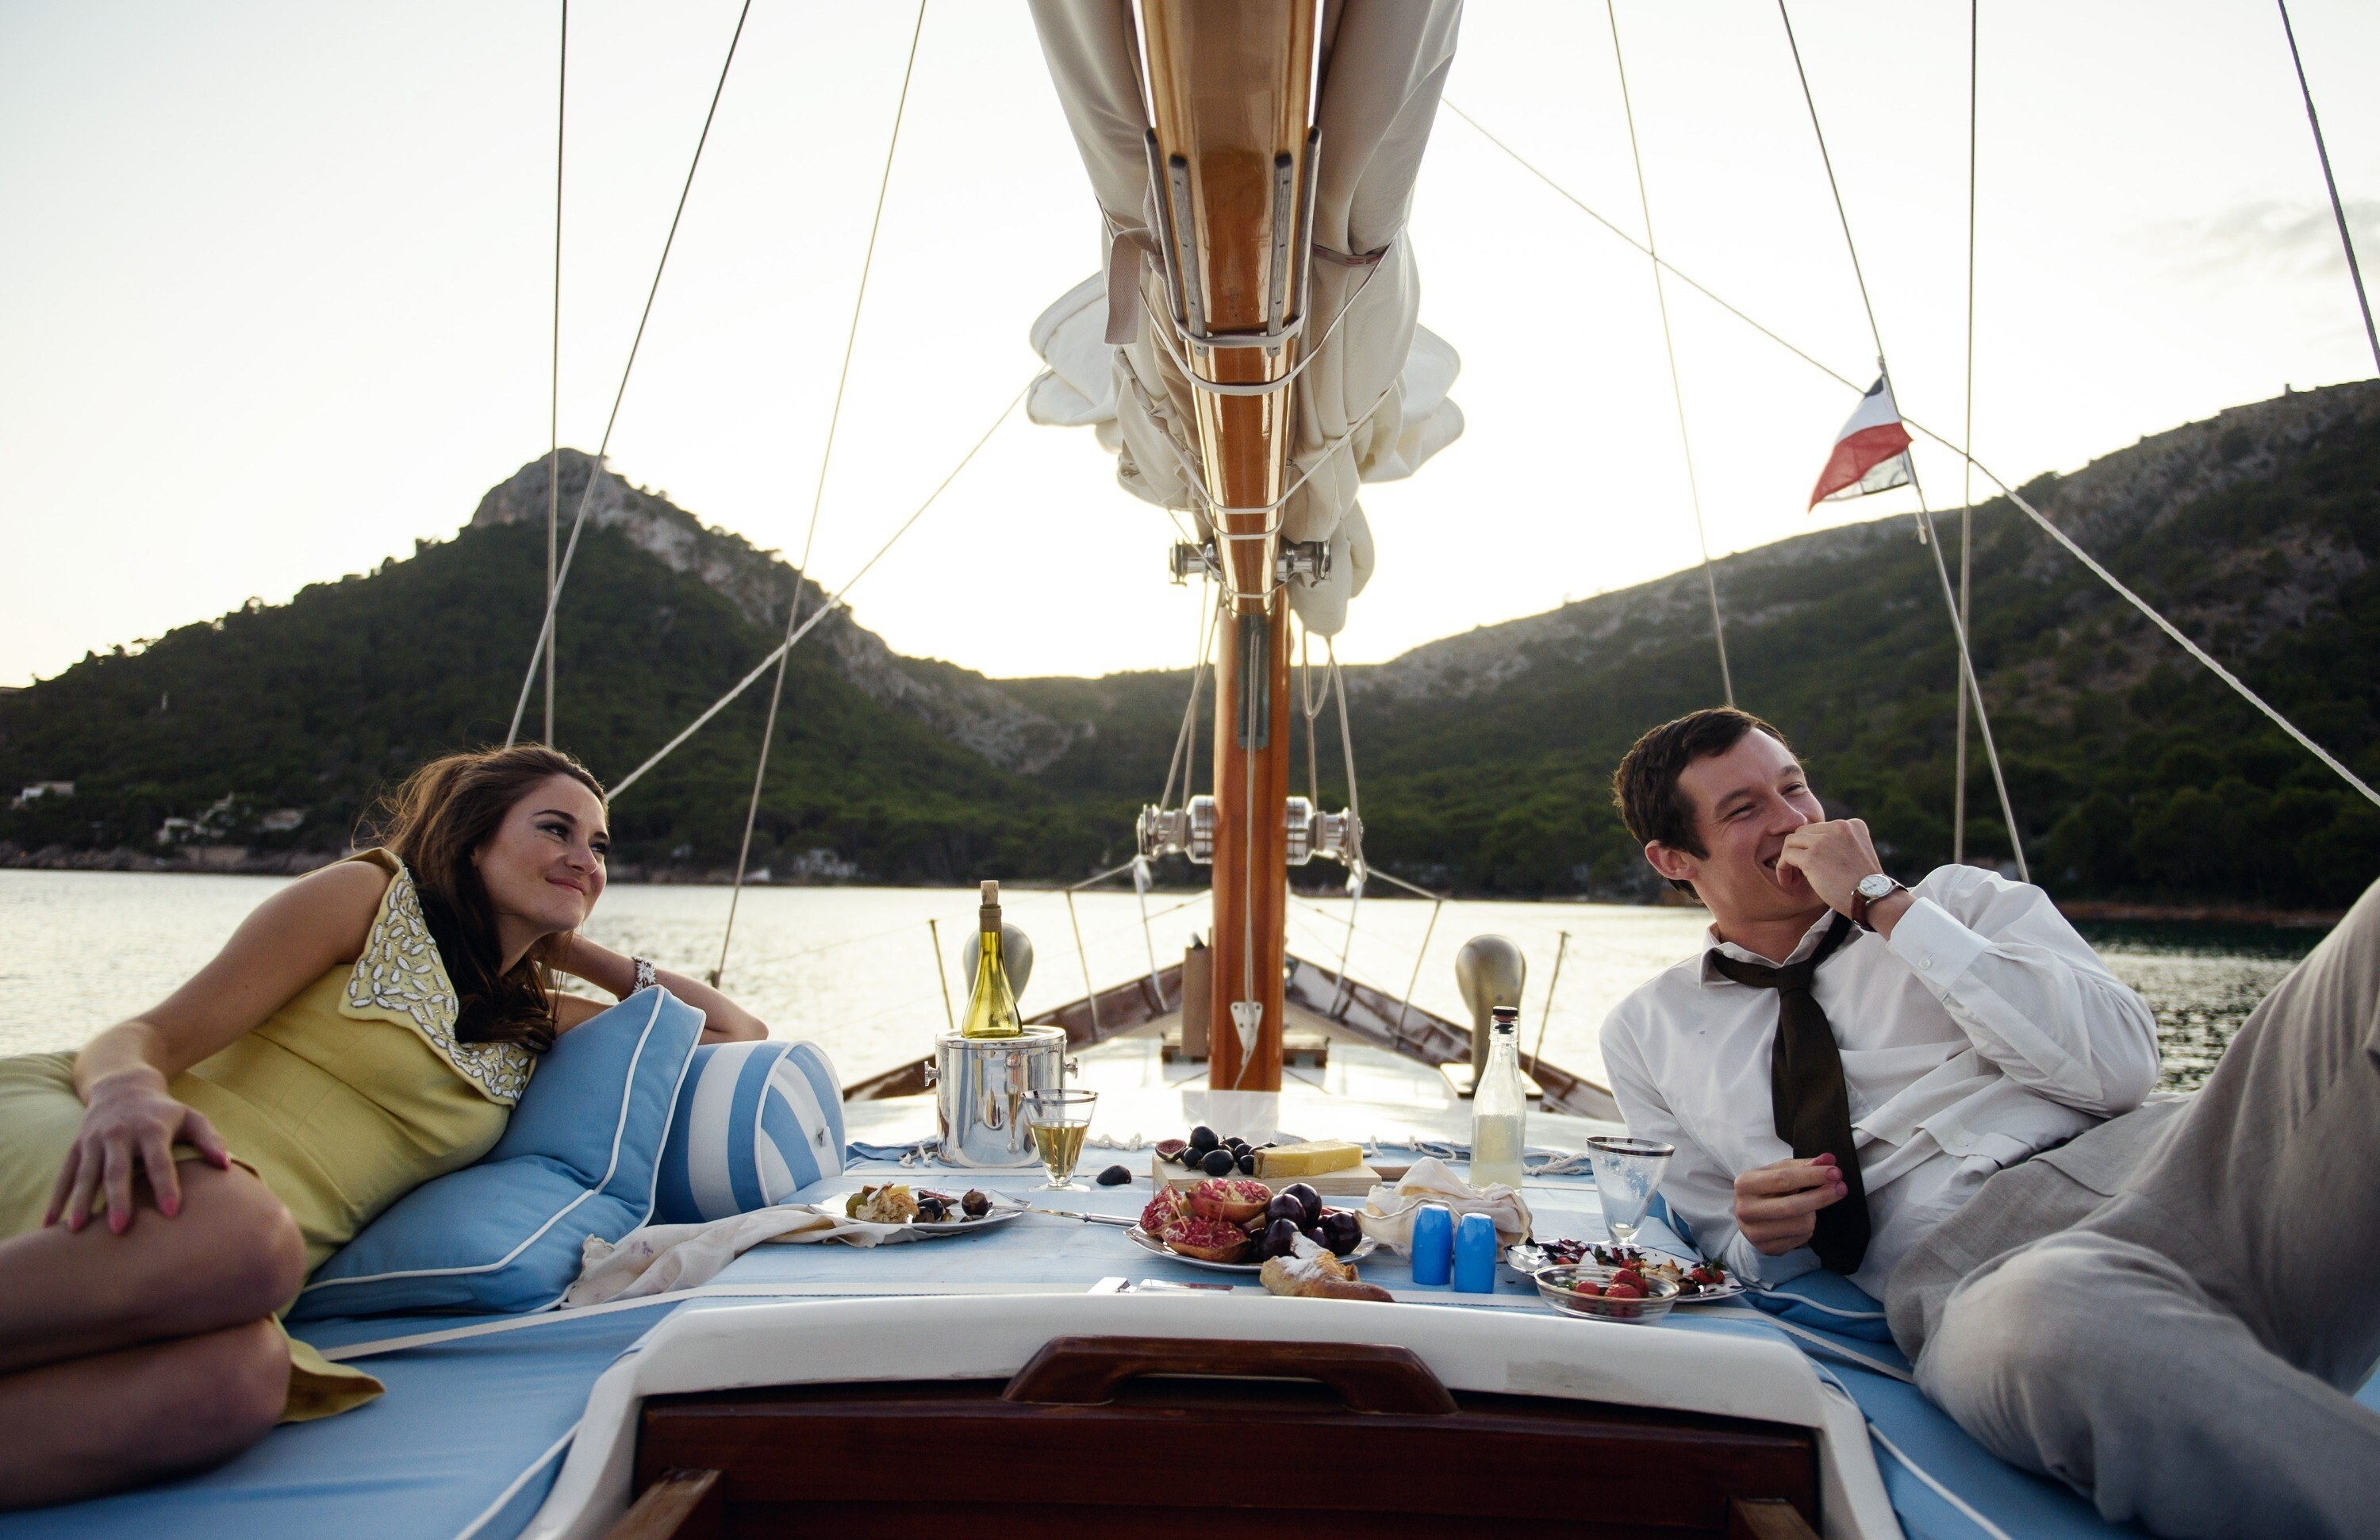 Jennifer and Anthony lounging at the bow of a sailboat with berries and snacks and chilled champagne between them, on a body of water with tree-topped mountains behind them